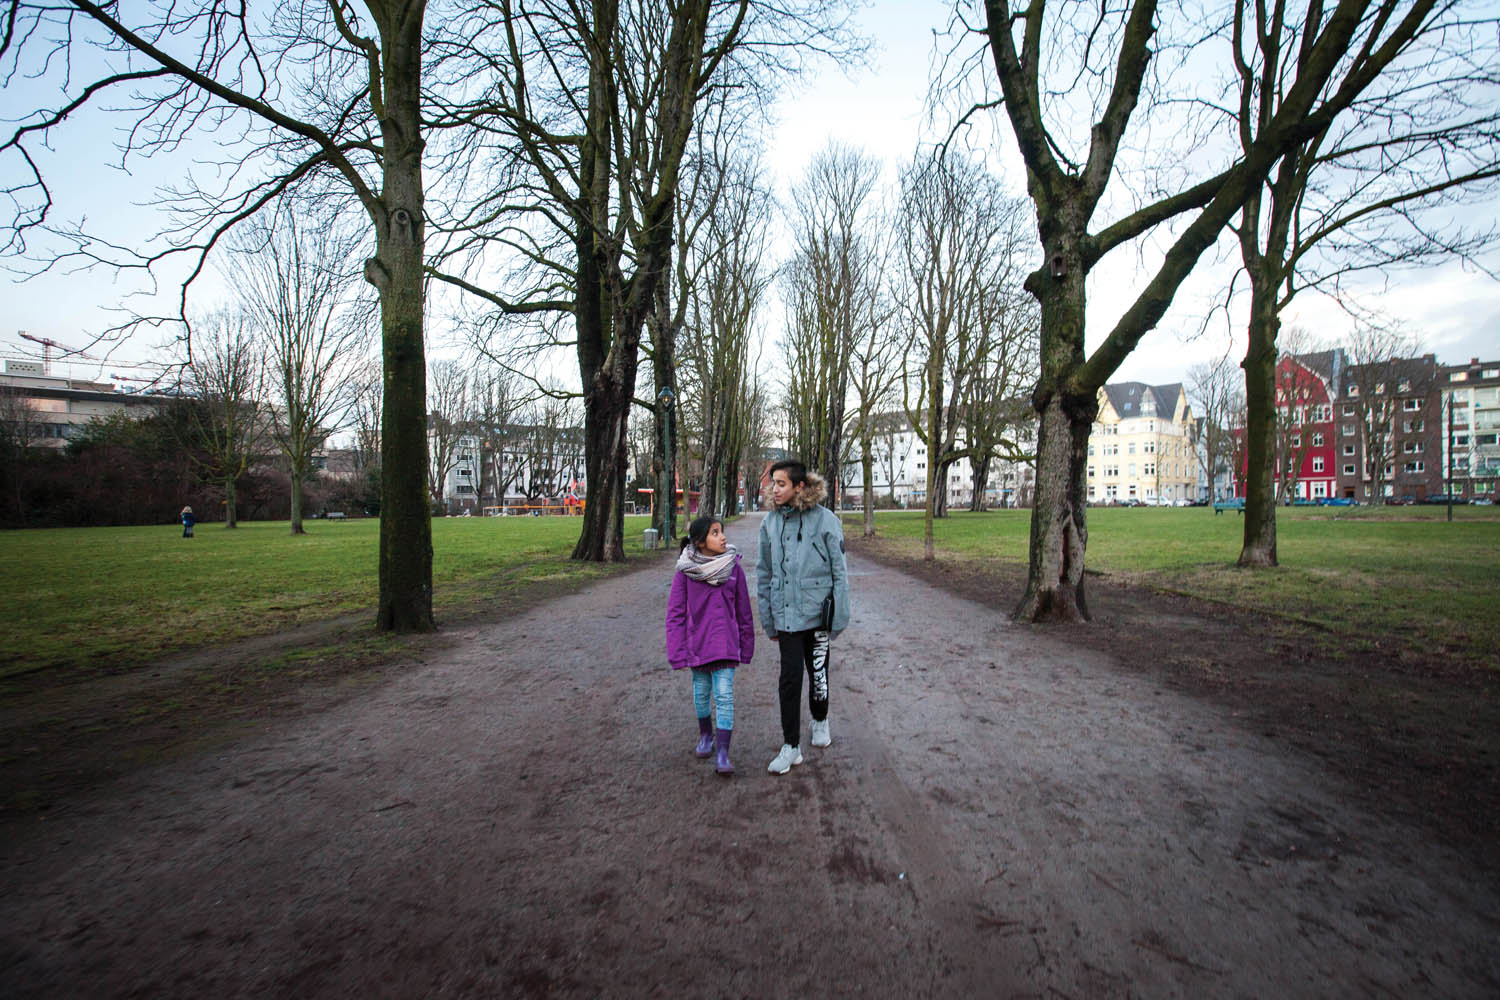 Milad (right) with his sister Mahya at the Frankenplatz park near their shelter in Düsseldorf. January, 2017. Photo by Diàna Markosian.